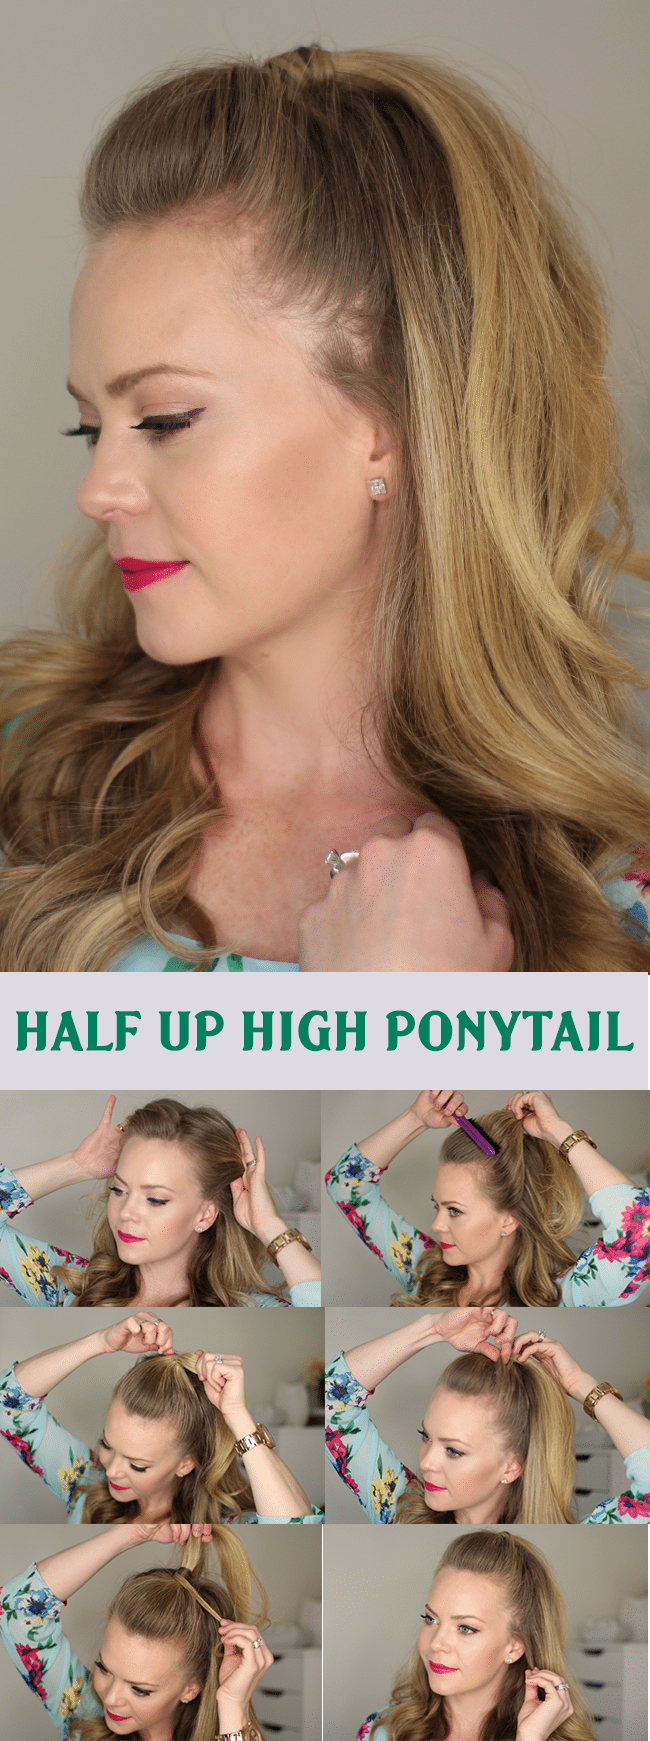 Half Up High Ponytail Hairstyle